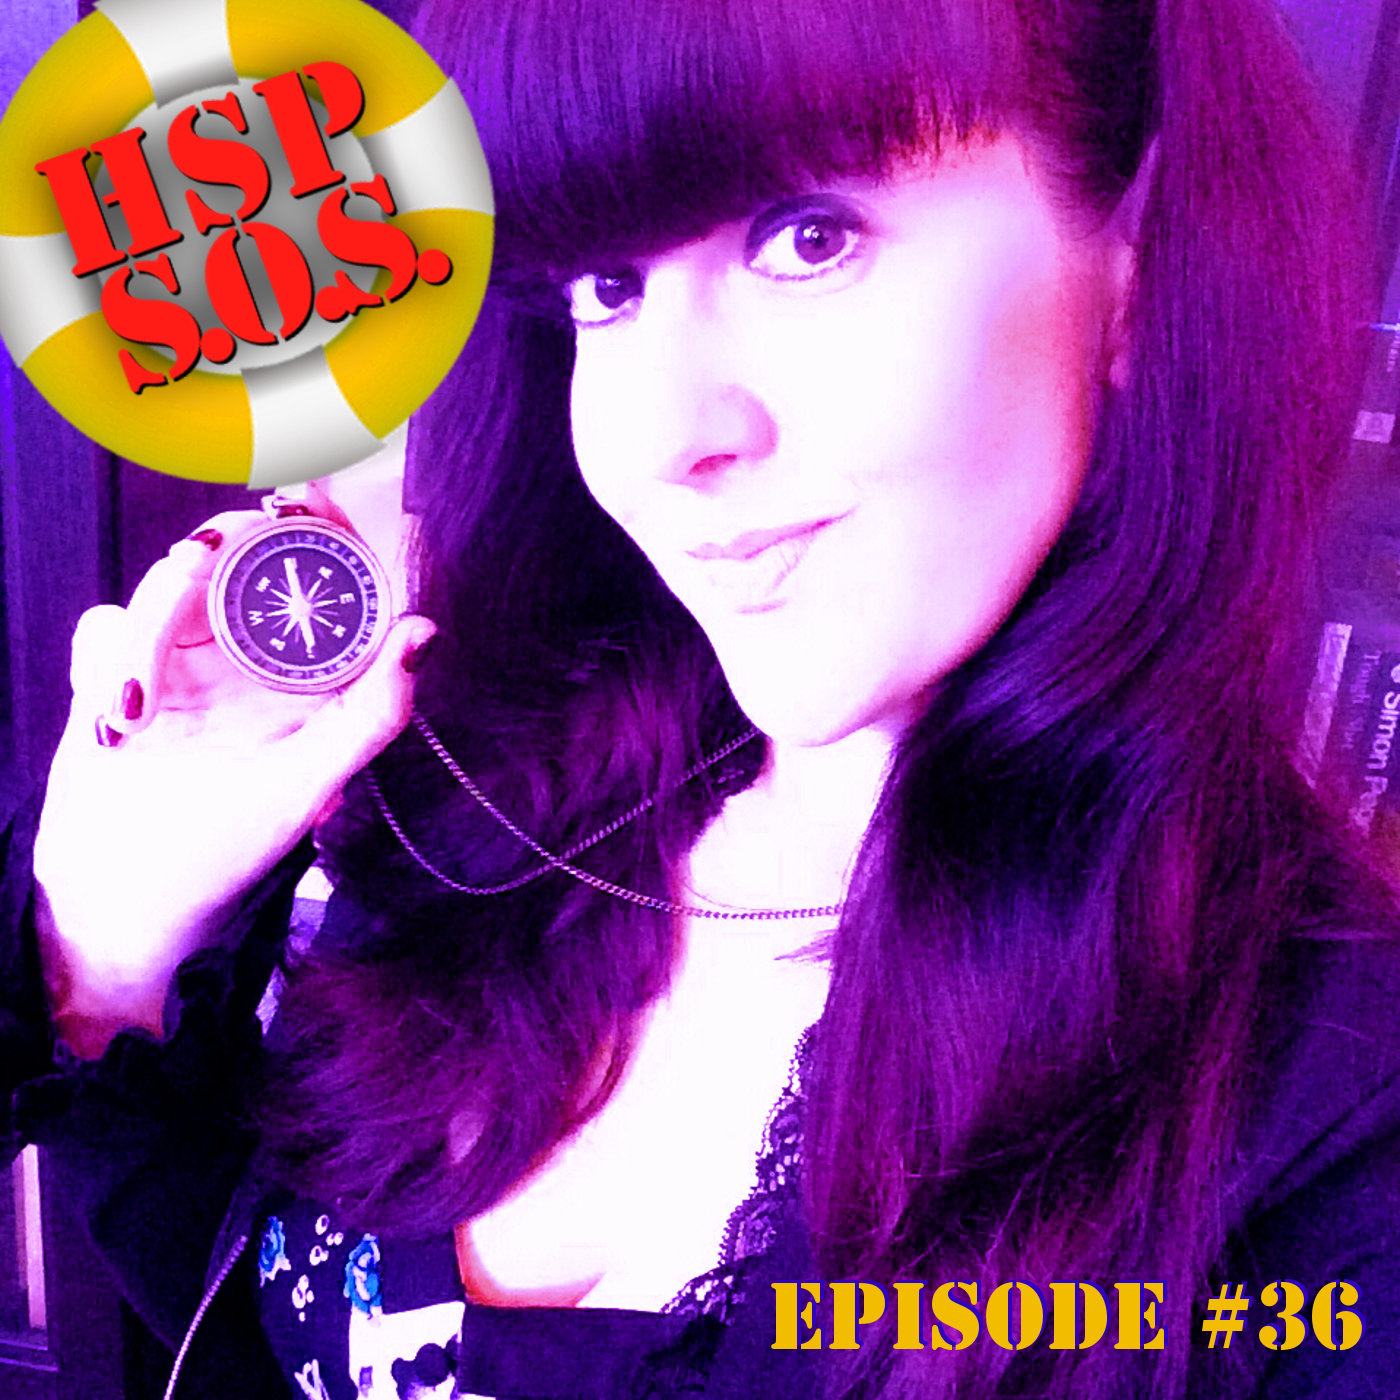 HSP SOS #36 - Keeping Passion Positive